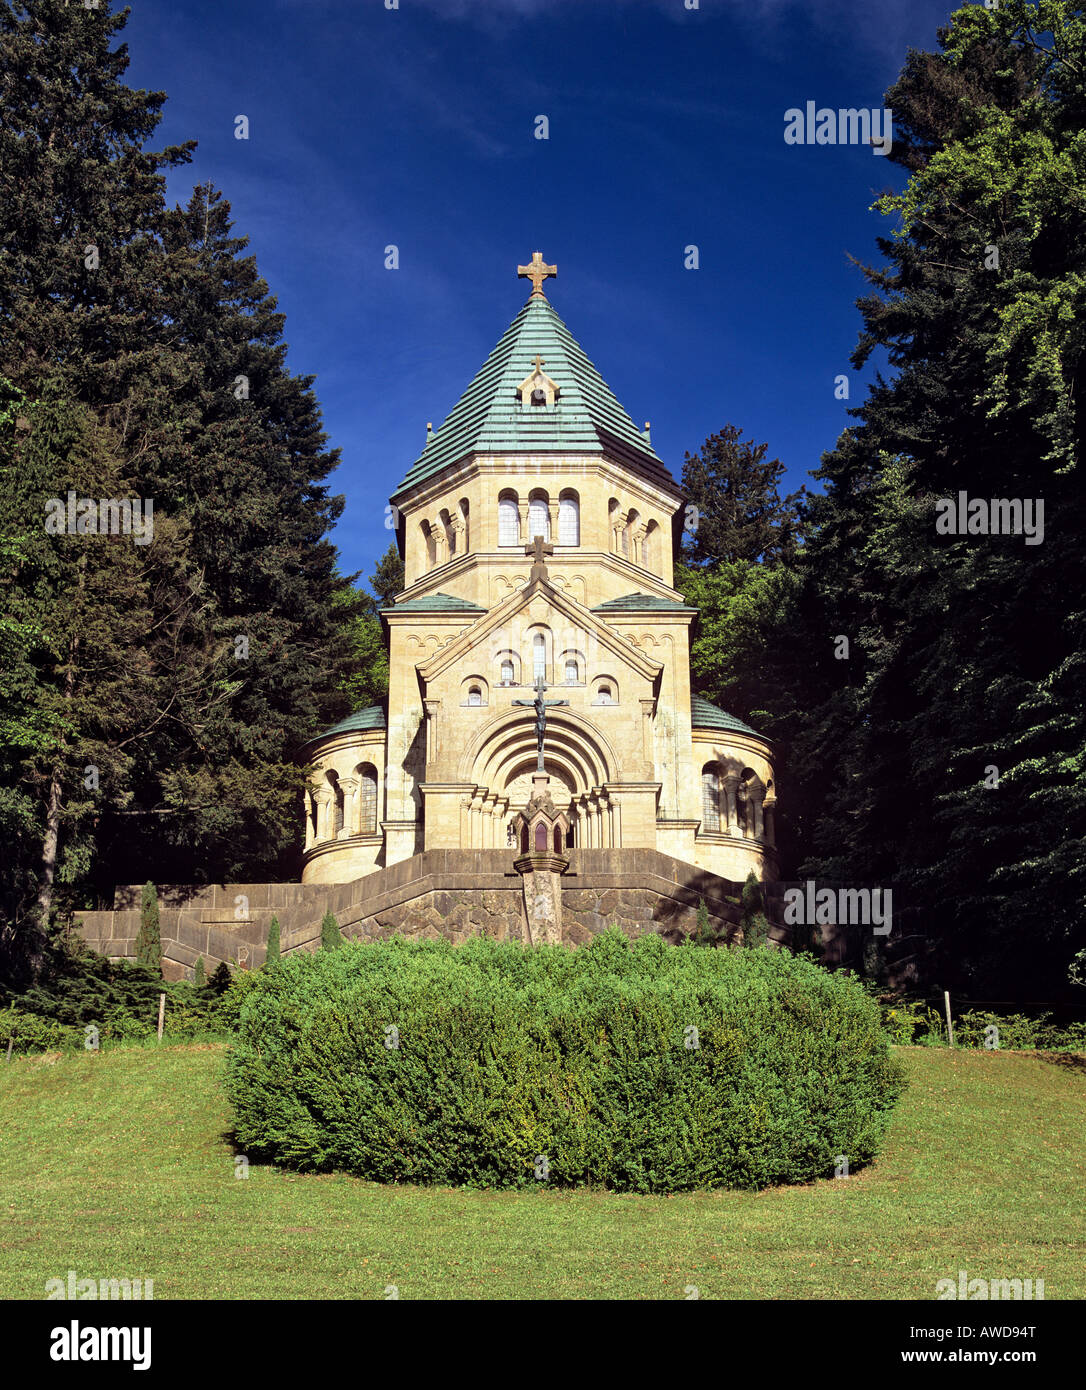 Votive chapel at Lake Starnberg, site where King Ludwig II of Bavaria was found dead, Upper Bavaria, Germany Stock Photo